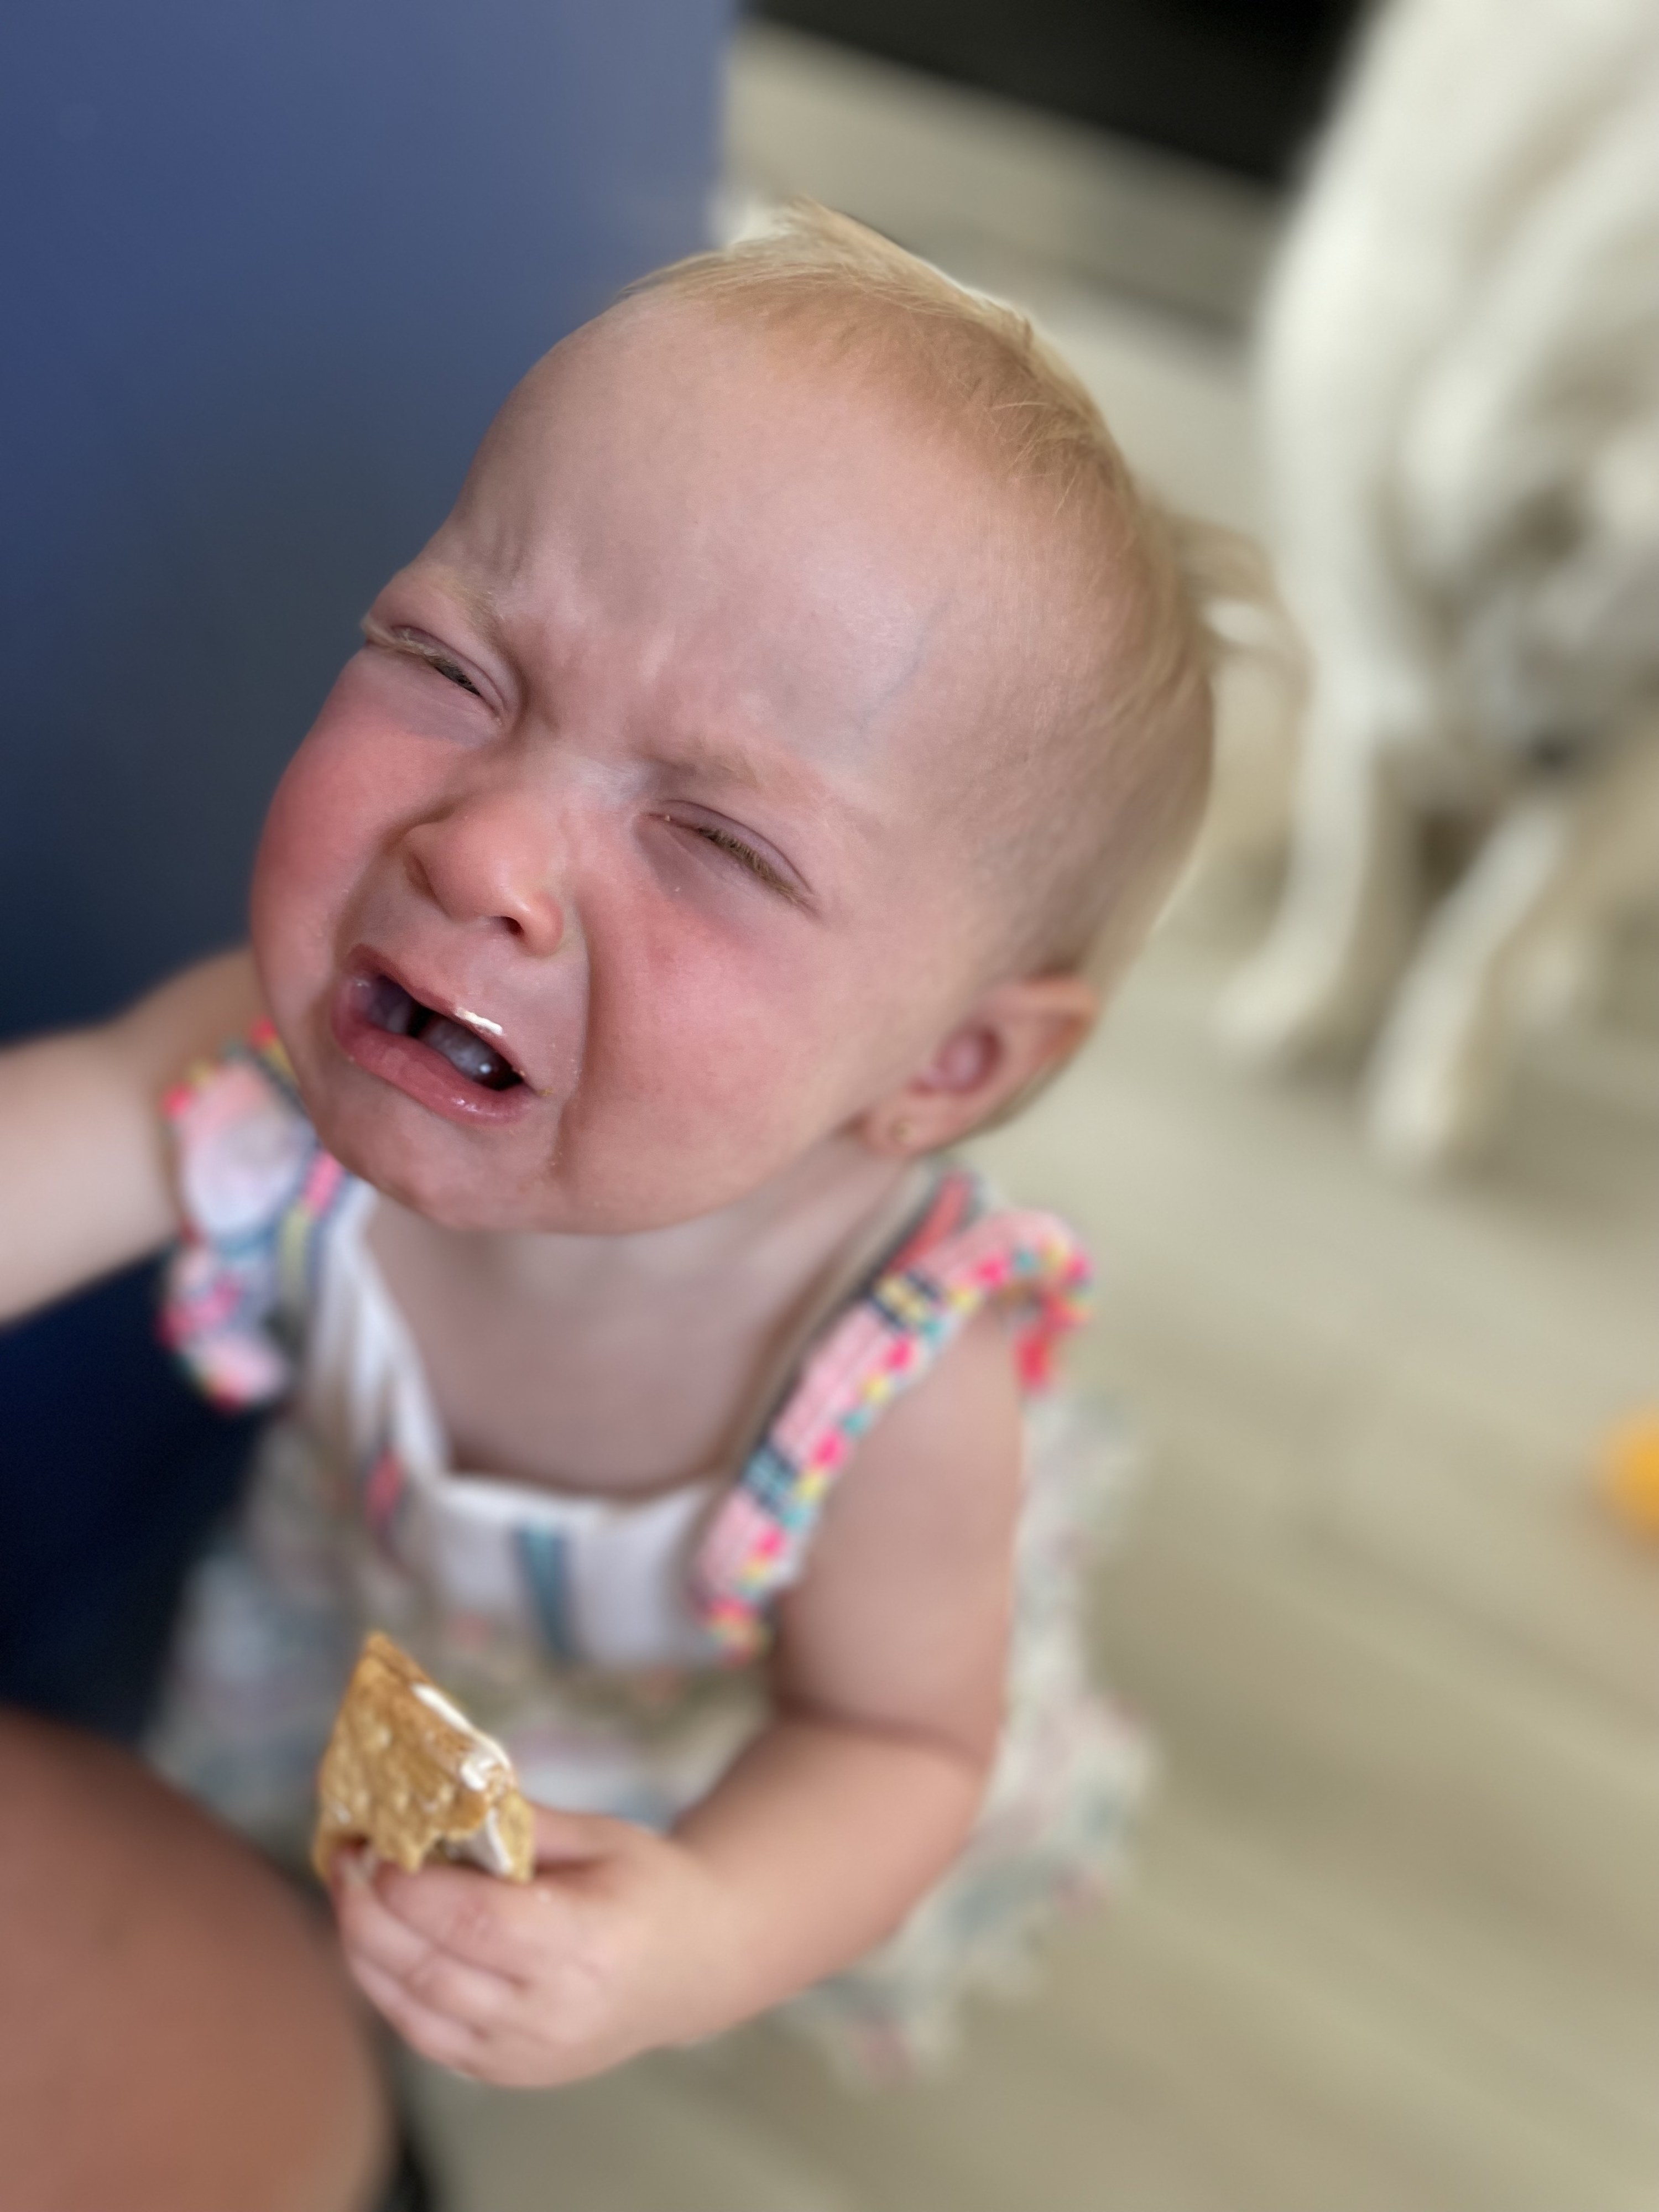 The author's daughter crying